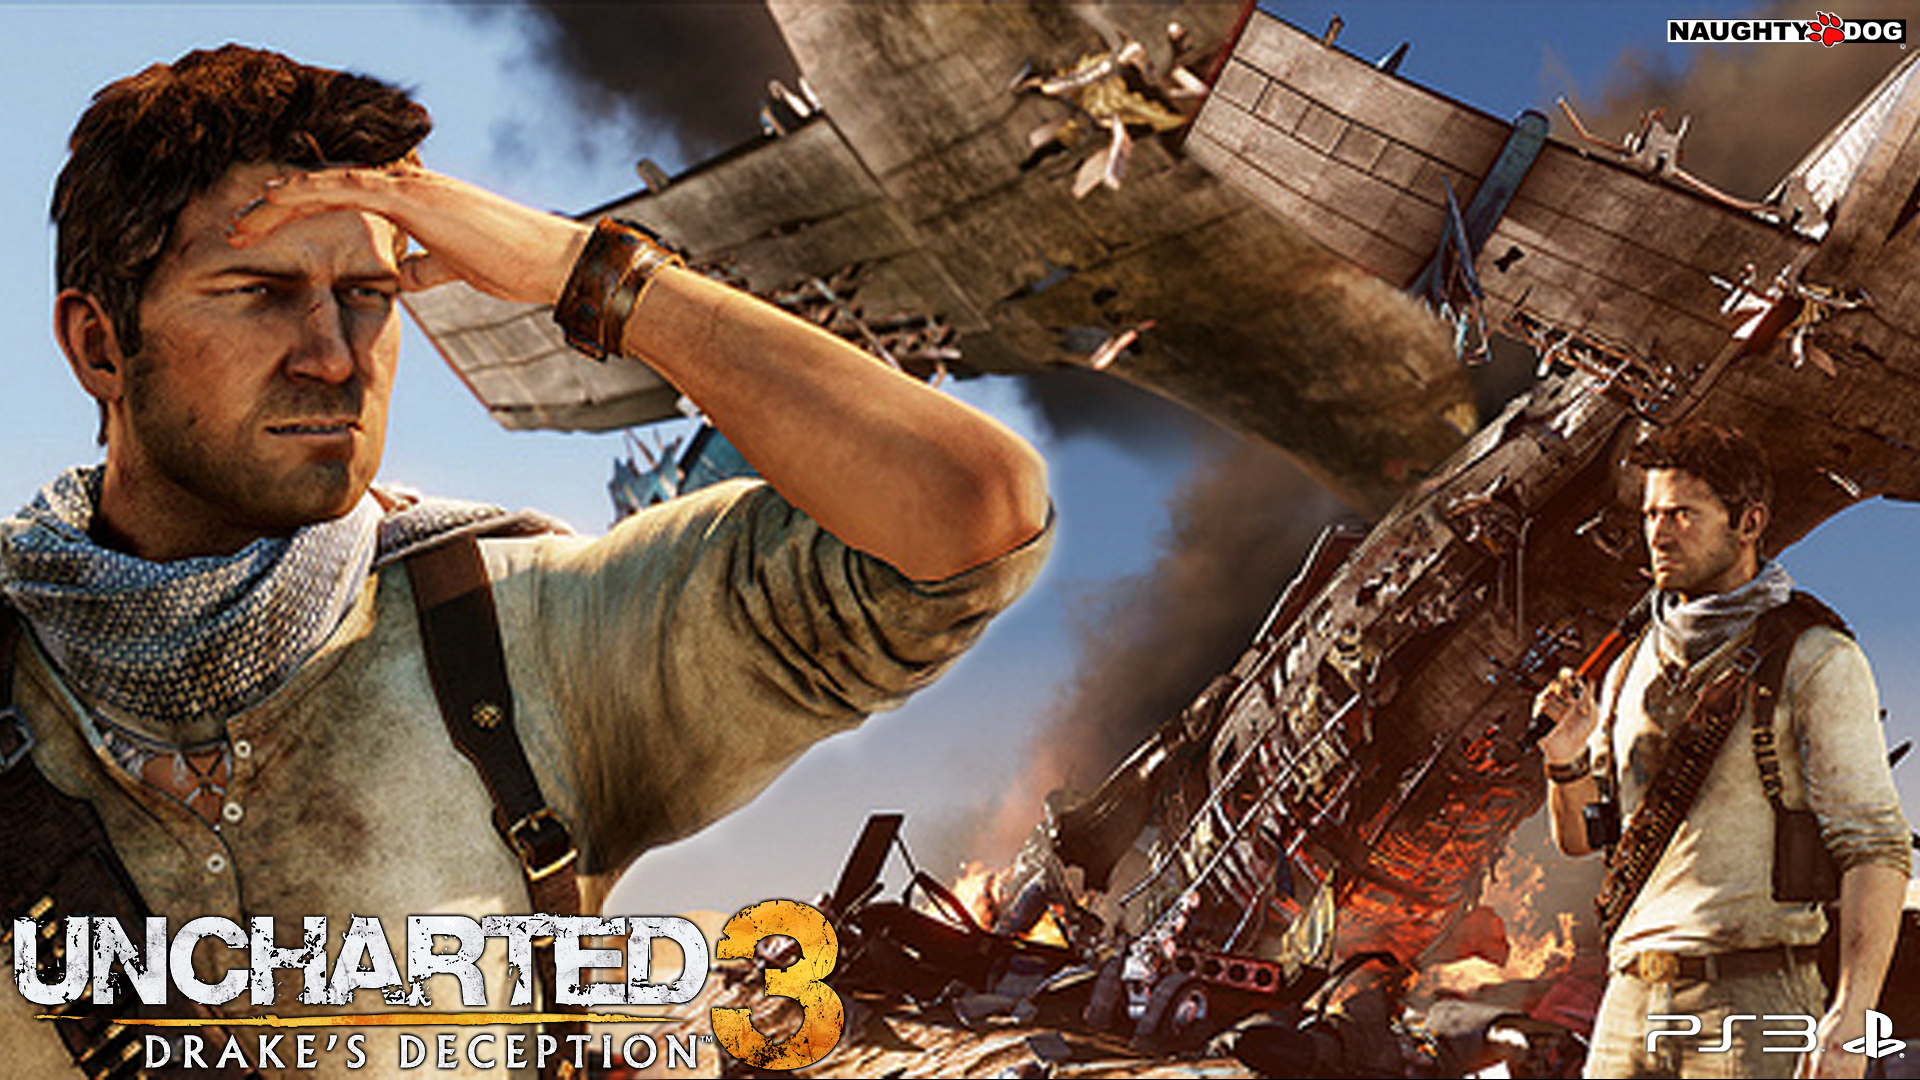 Uncharted 3 release date